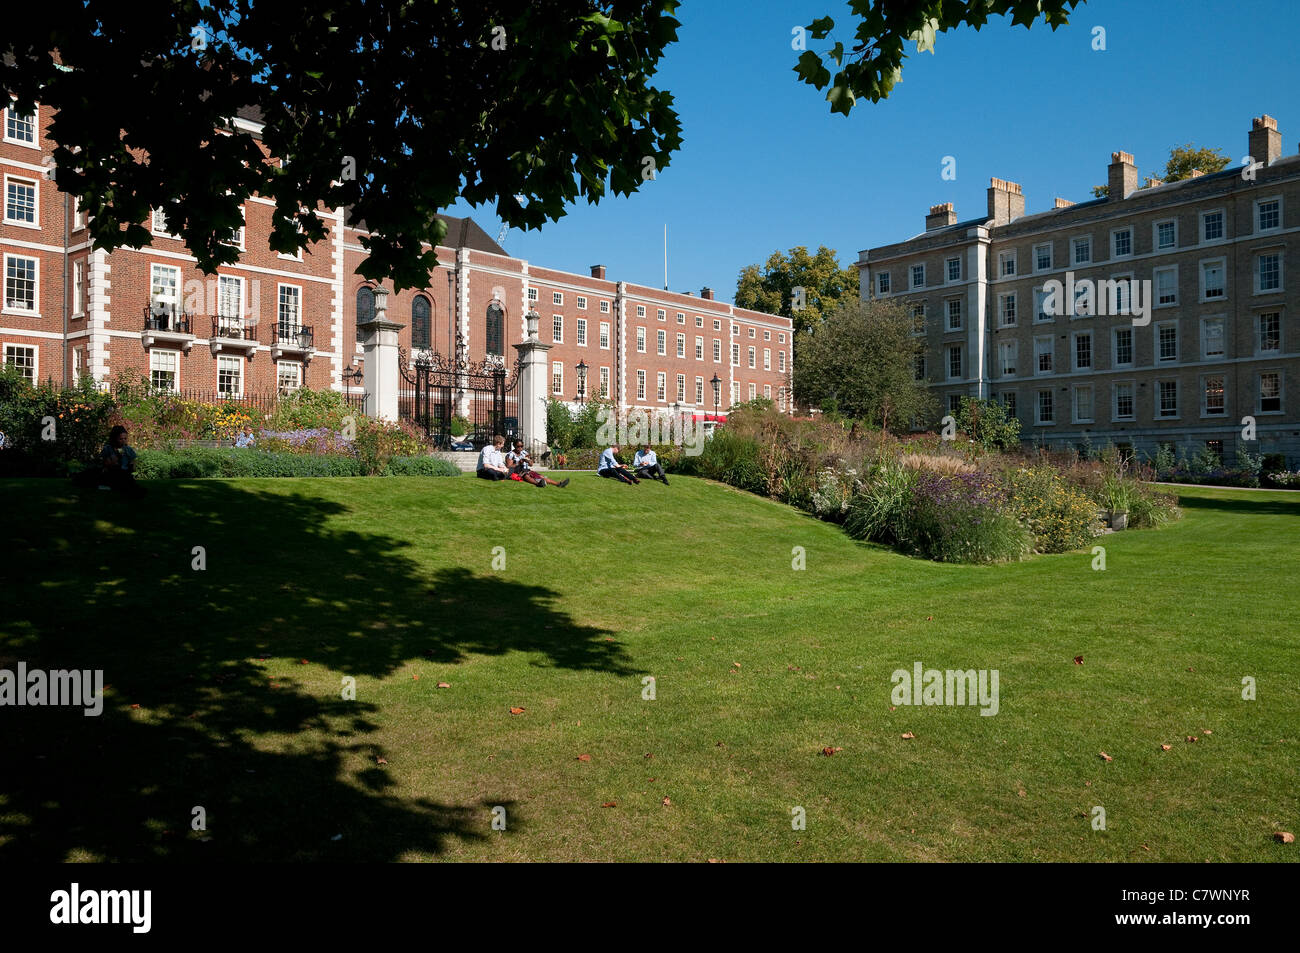 inner temple gardens, london, england - Stock Image